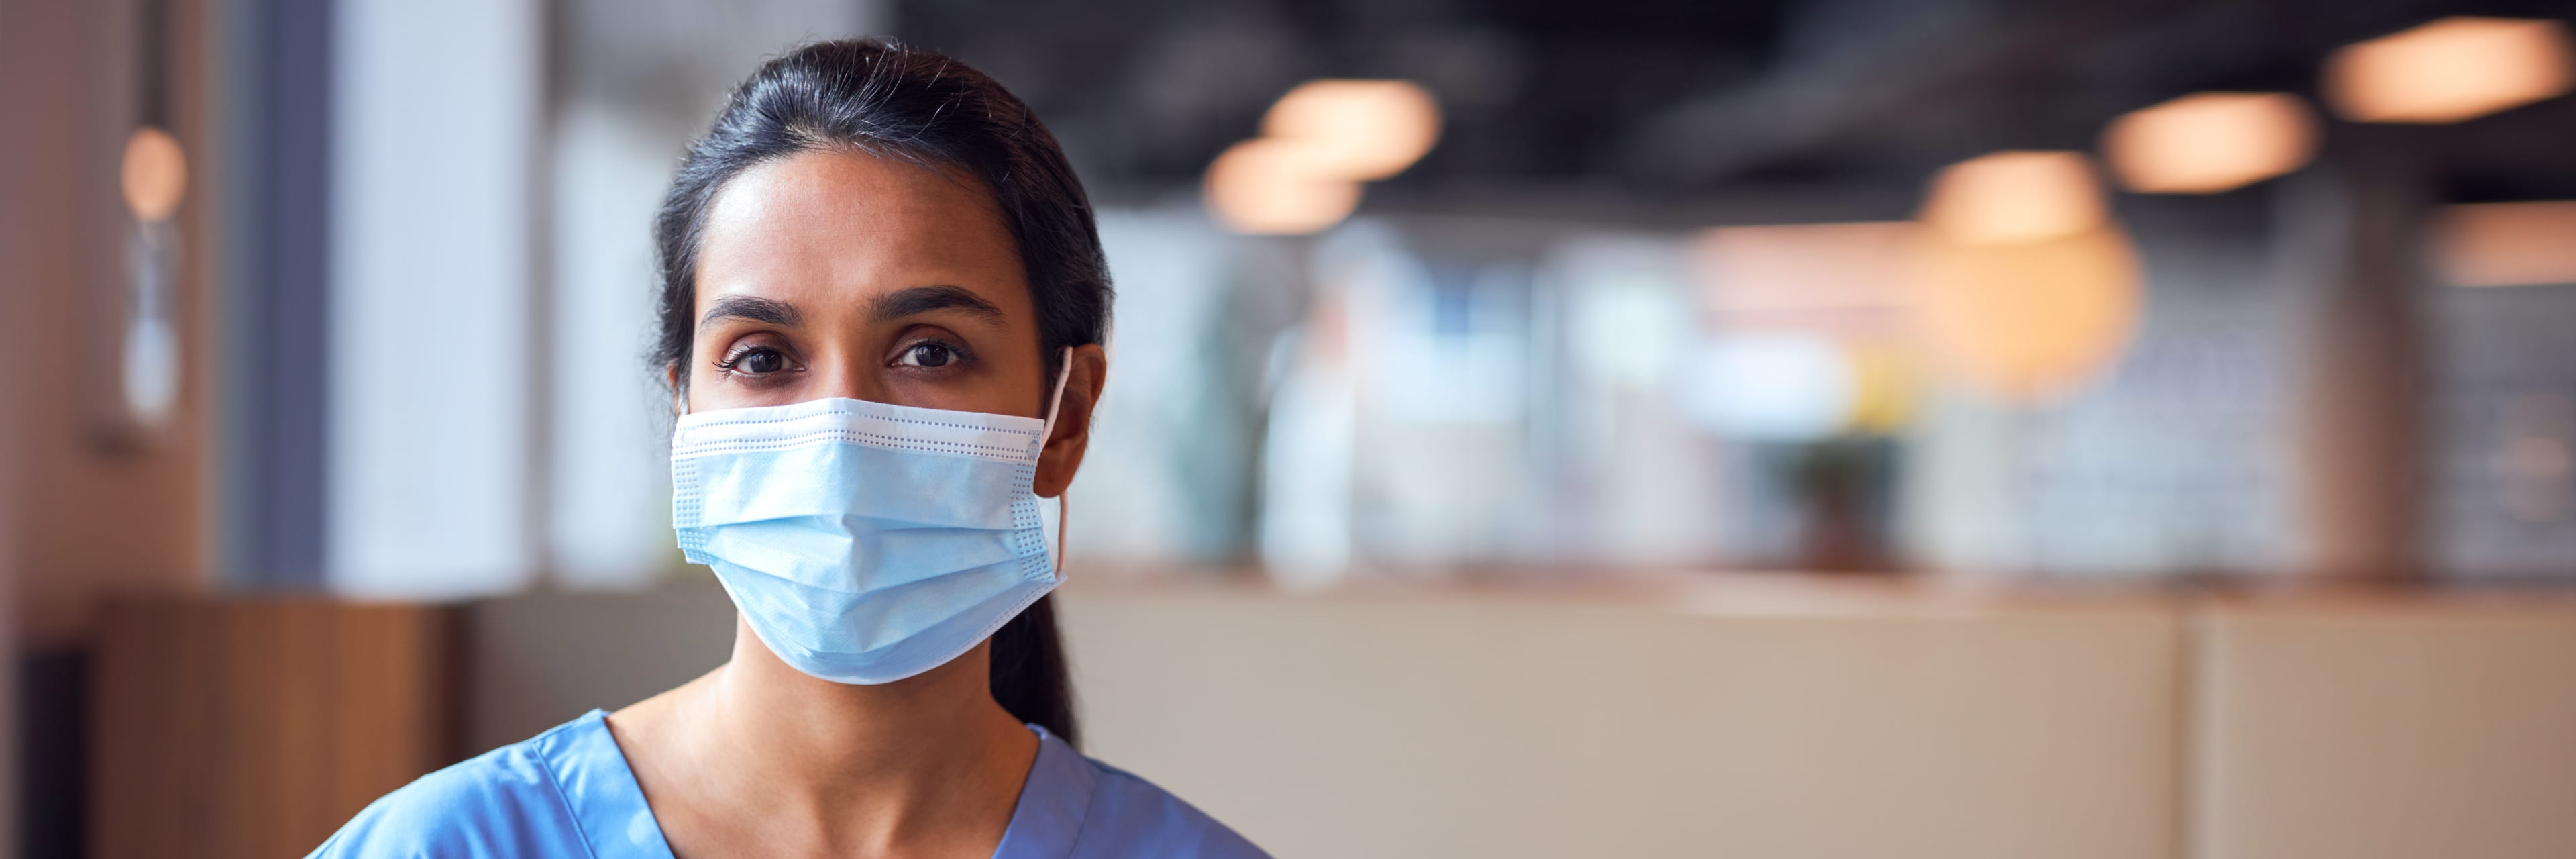 woman wearing a mask inside a building